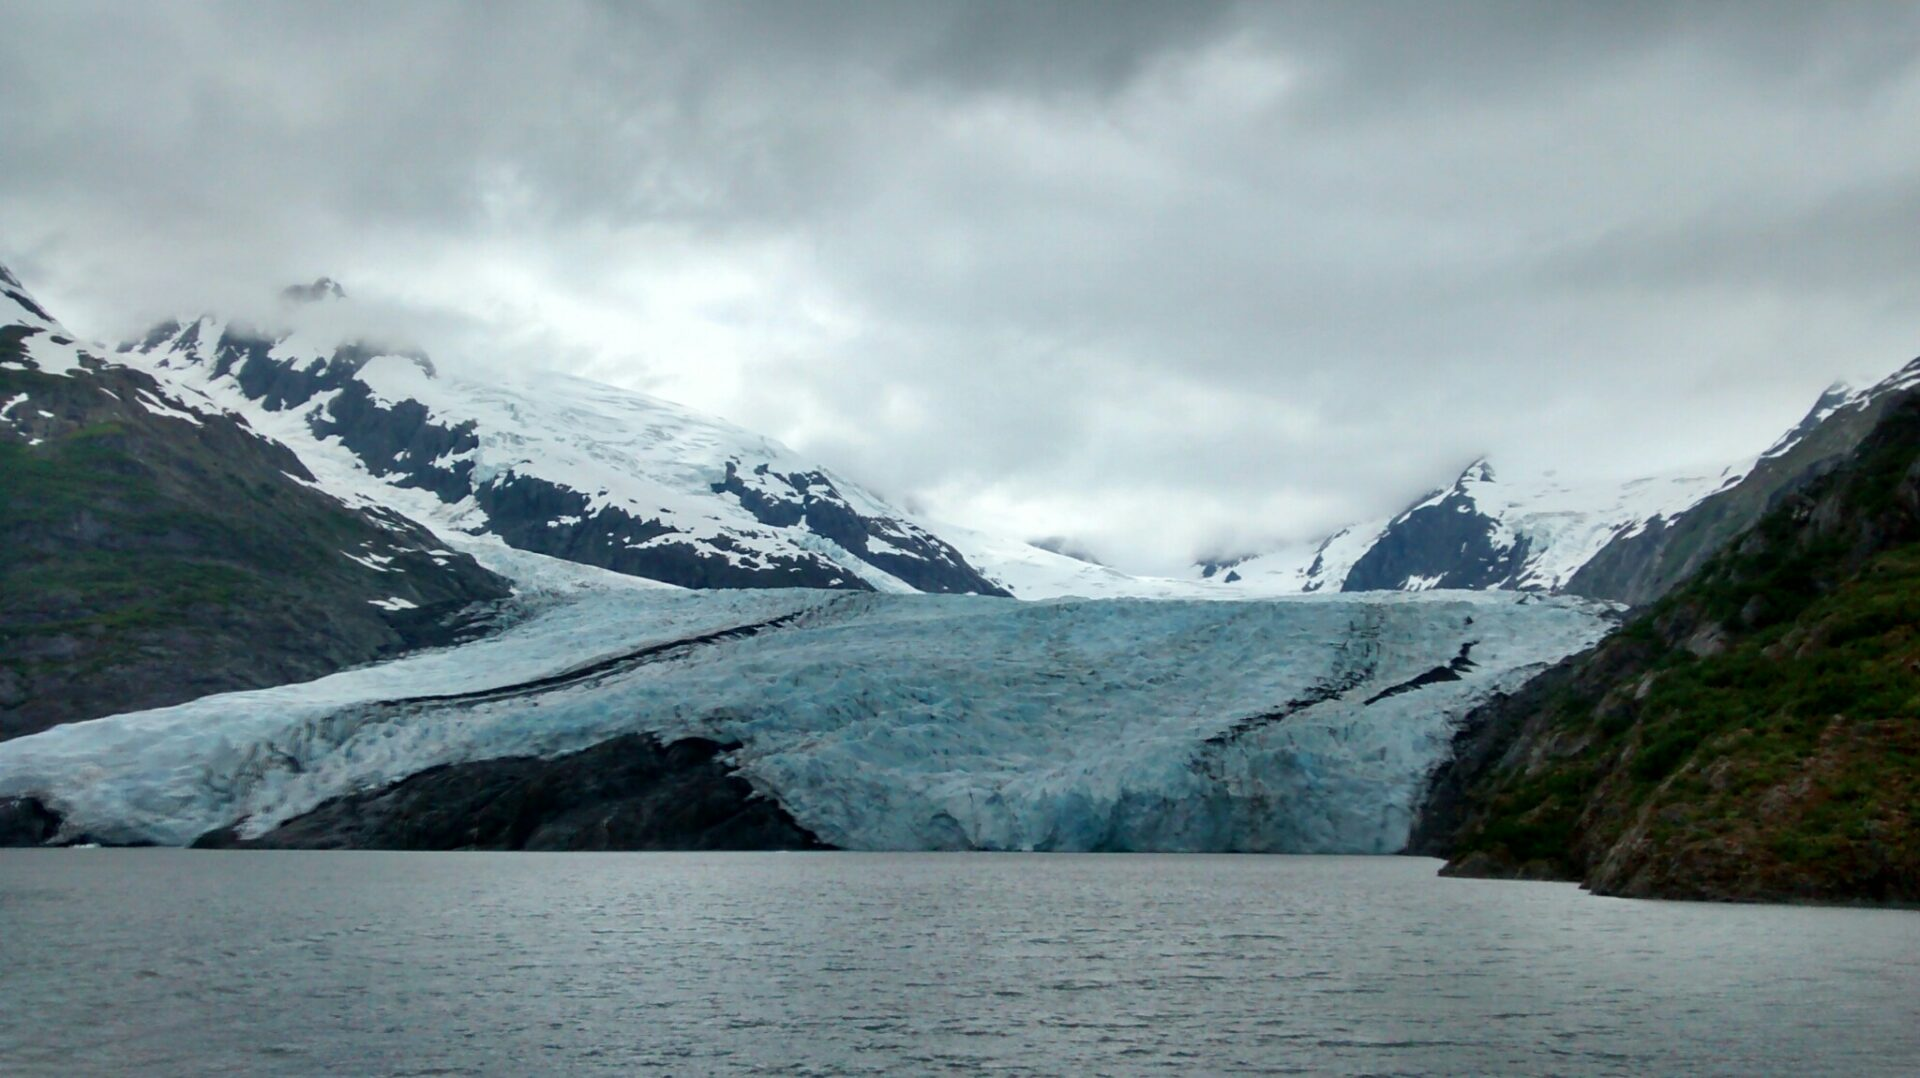 A glacier touches a lake on a cloudy day. There are rocks next to the glacier and mountains and snow in the background